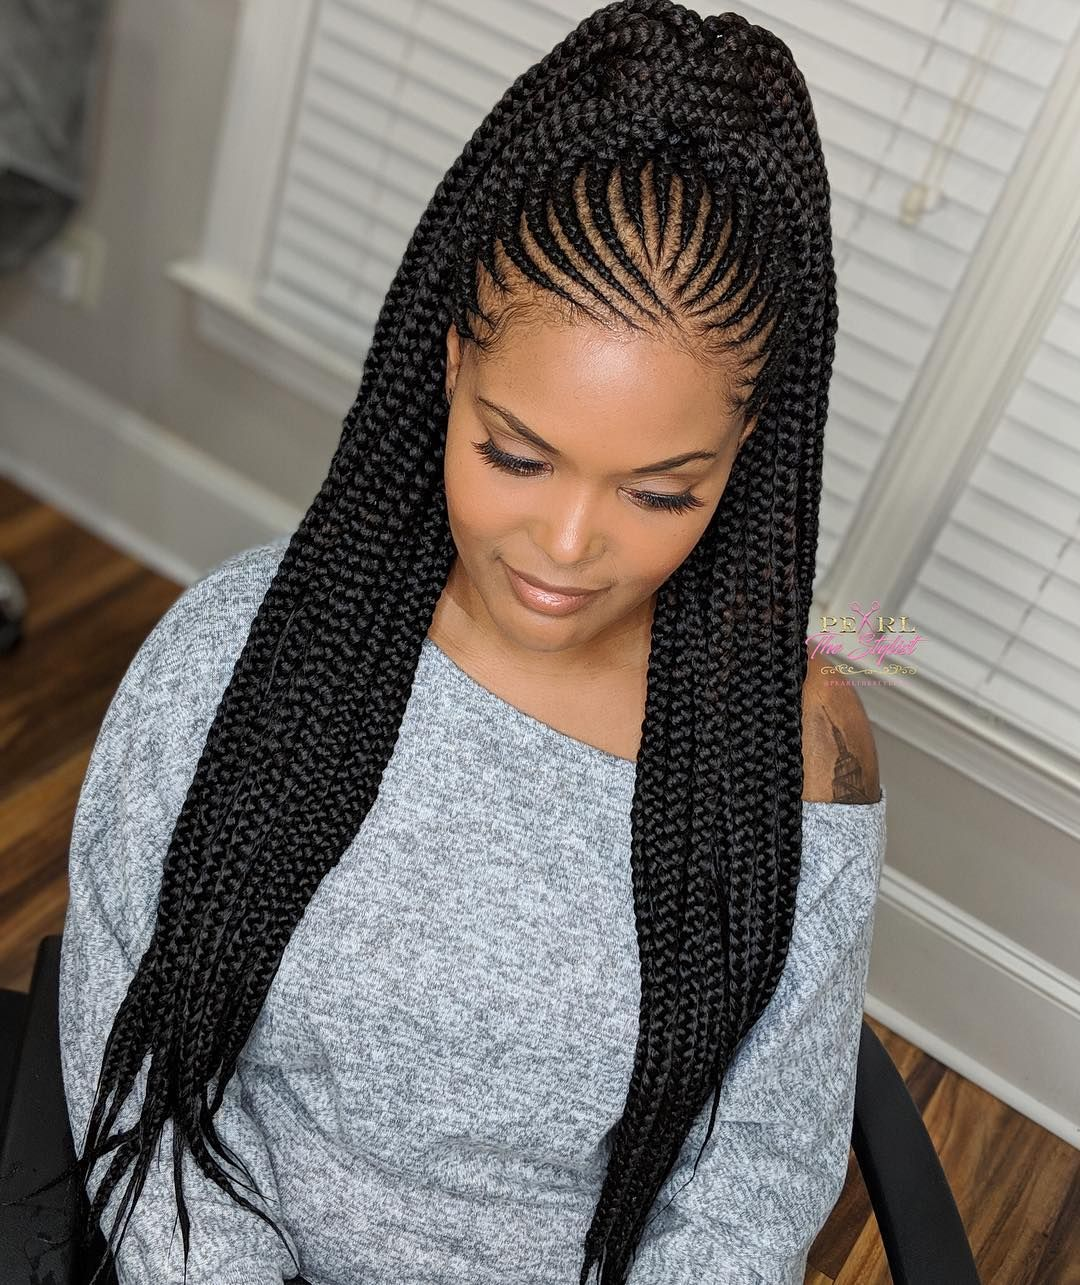 nigerian hair styles waist length tribal braids can be worn 4414 | fd45b65fb6aa4920928998b4b14c4414